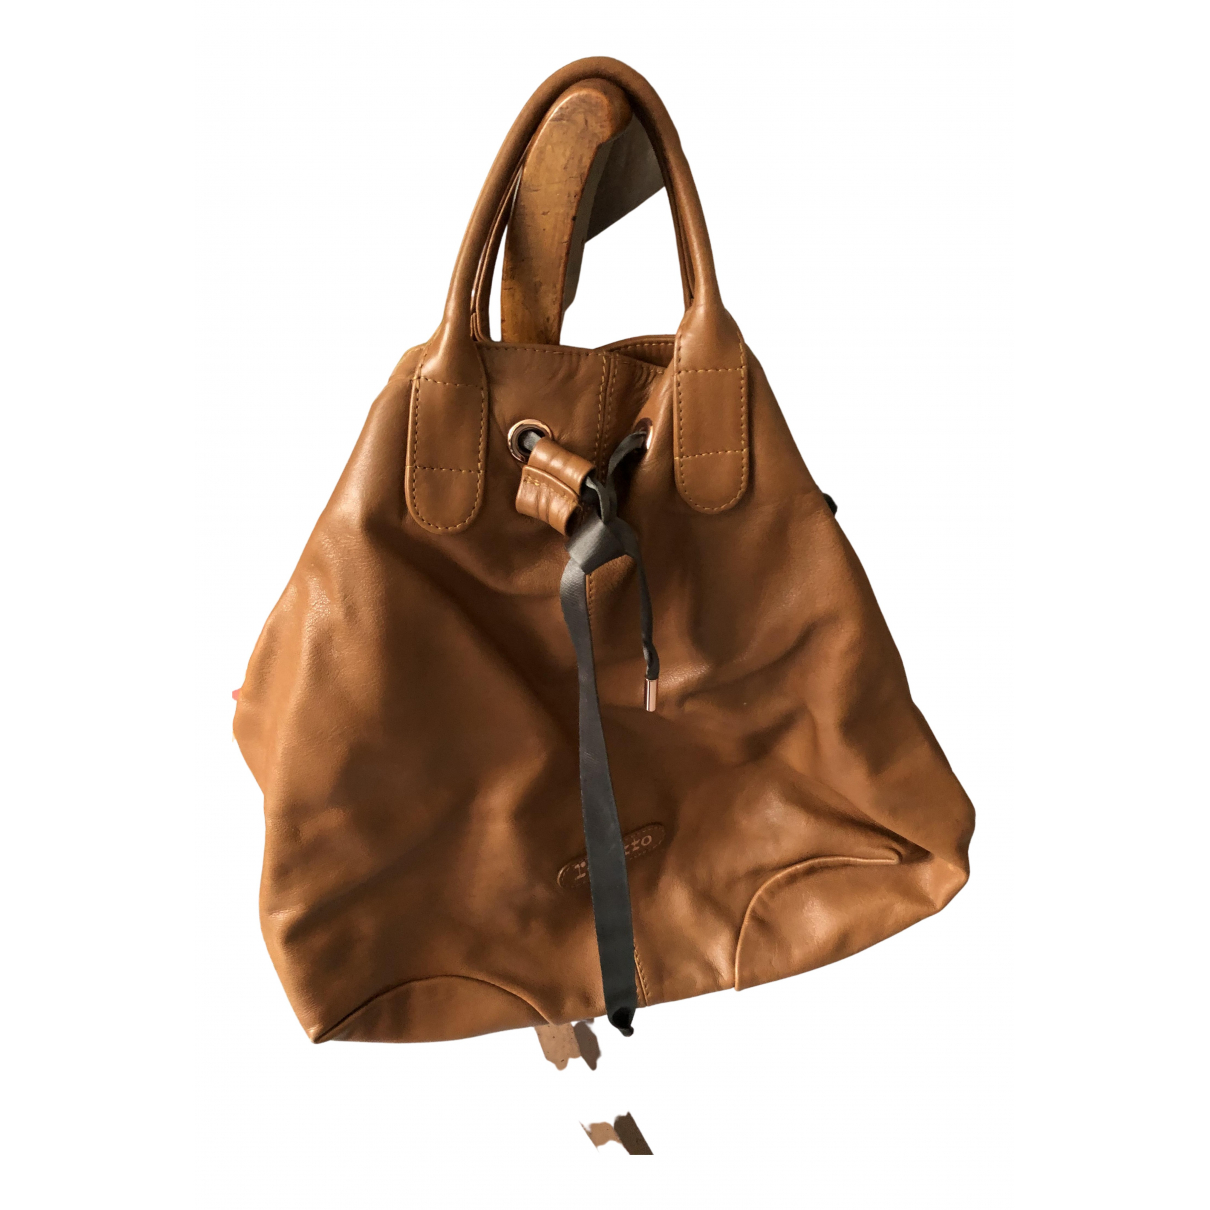 Repetto N Camel Leather handbag for Women N